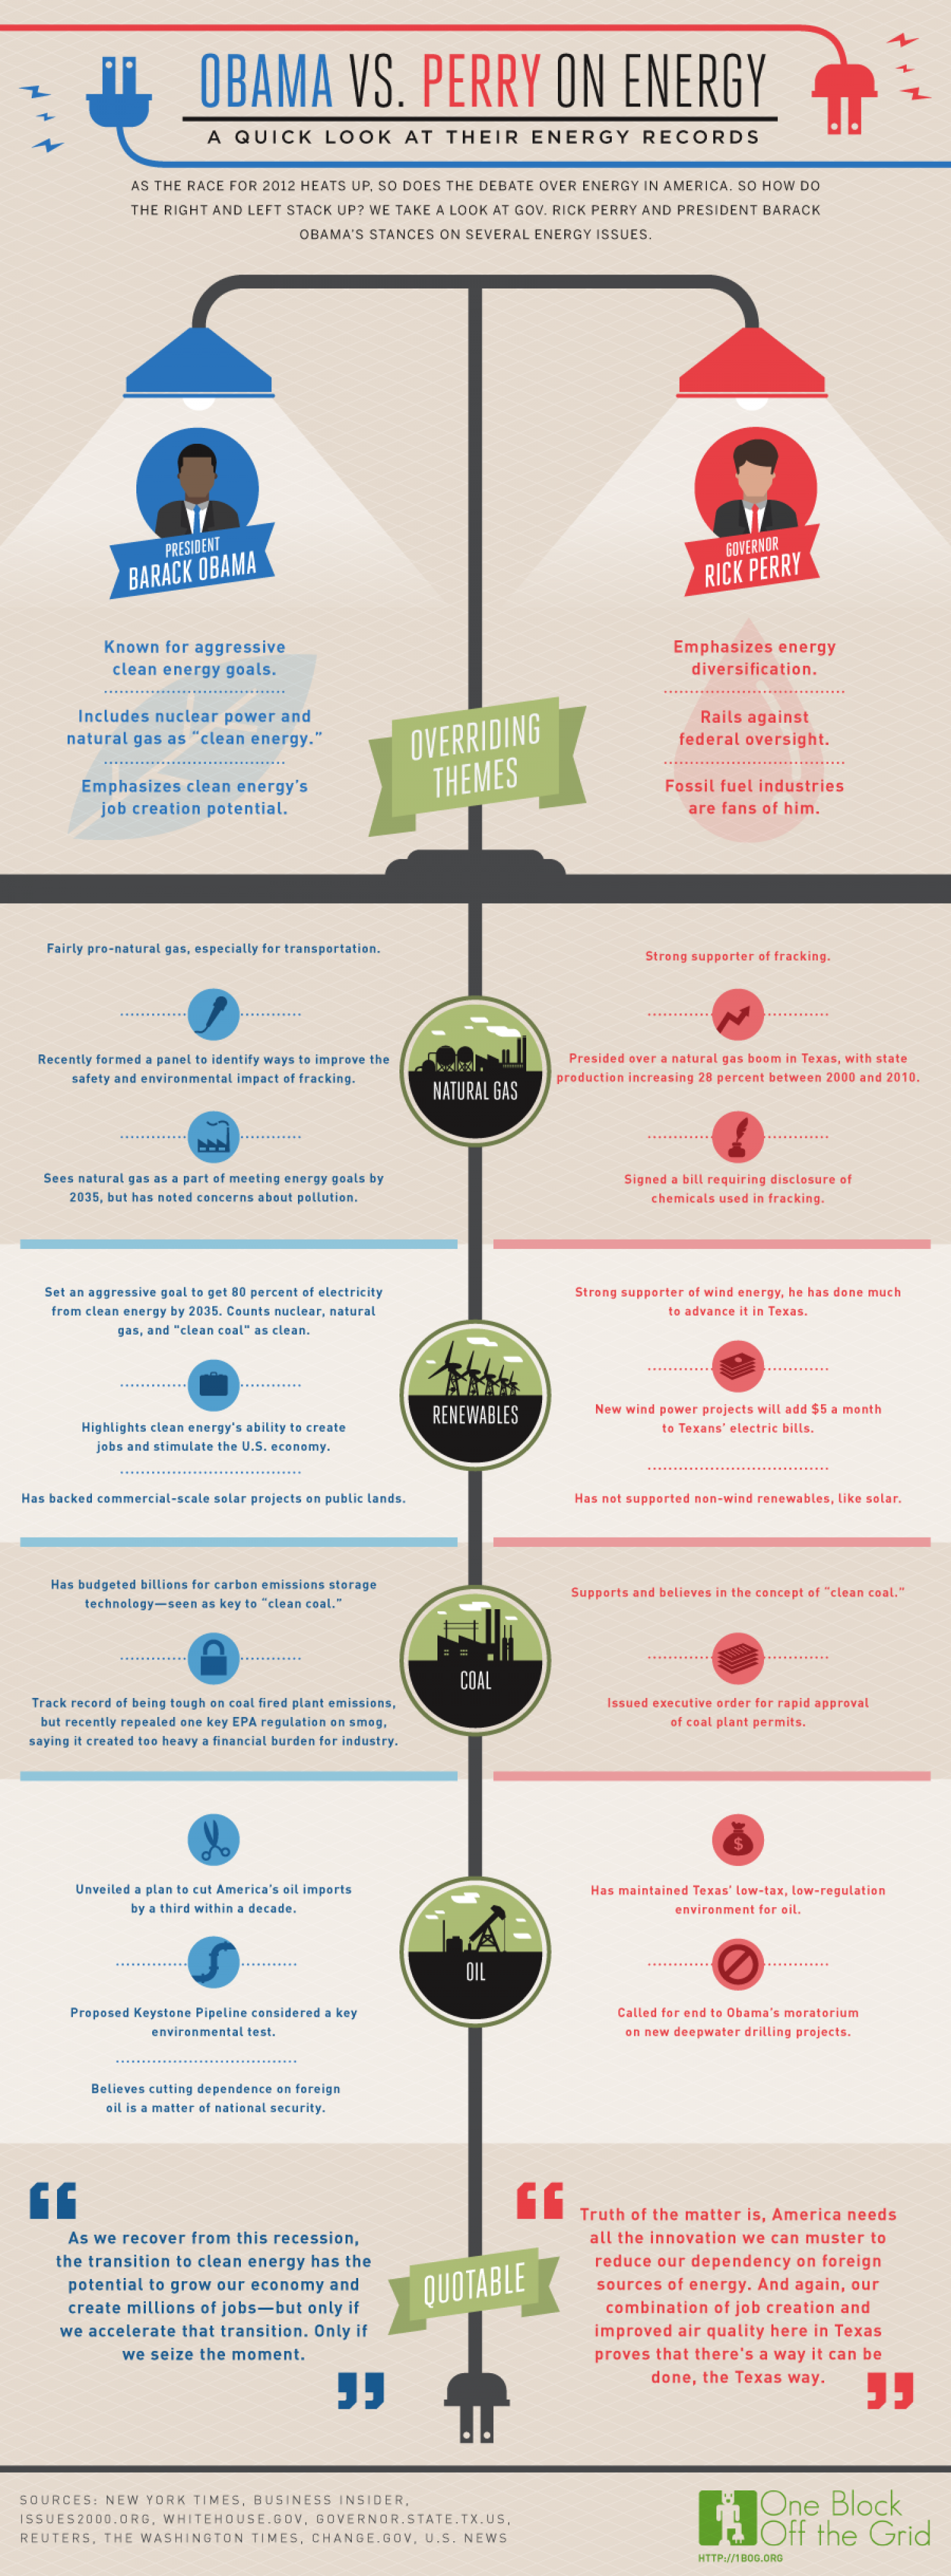 Obama vs. Perry on Energy Infographic